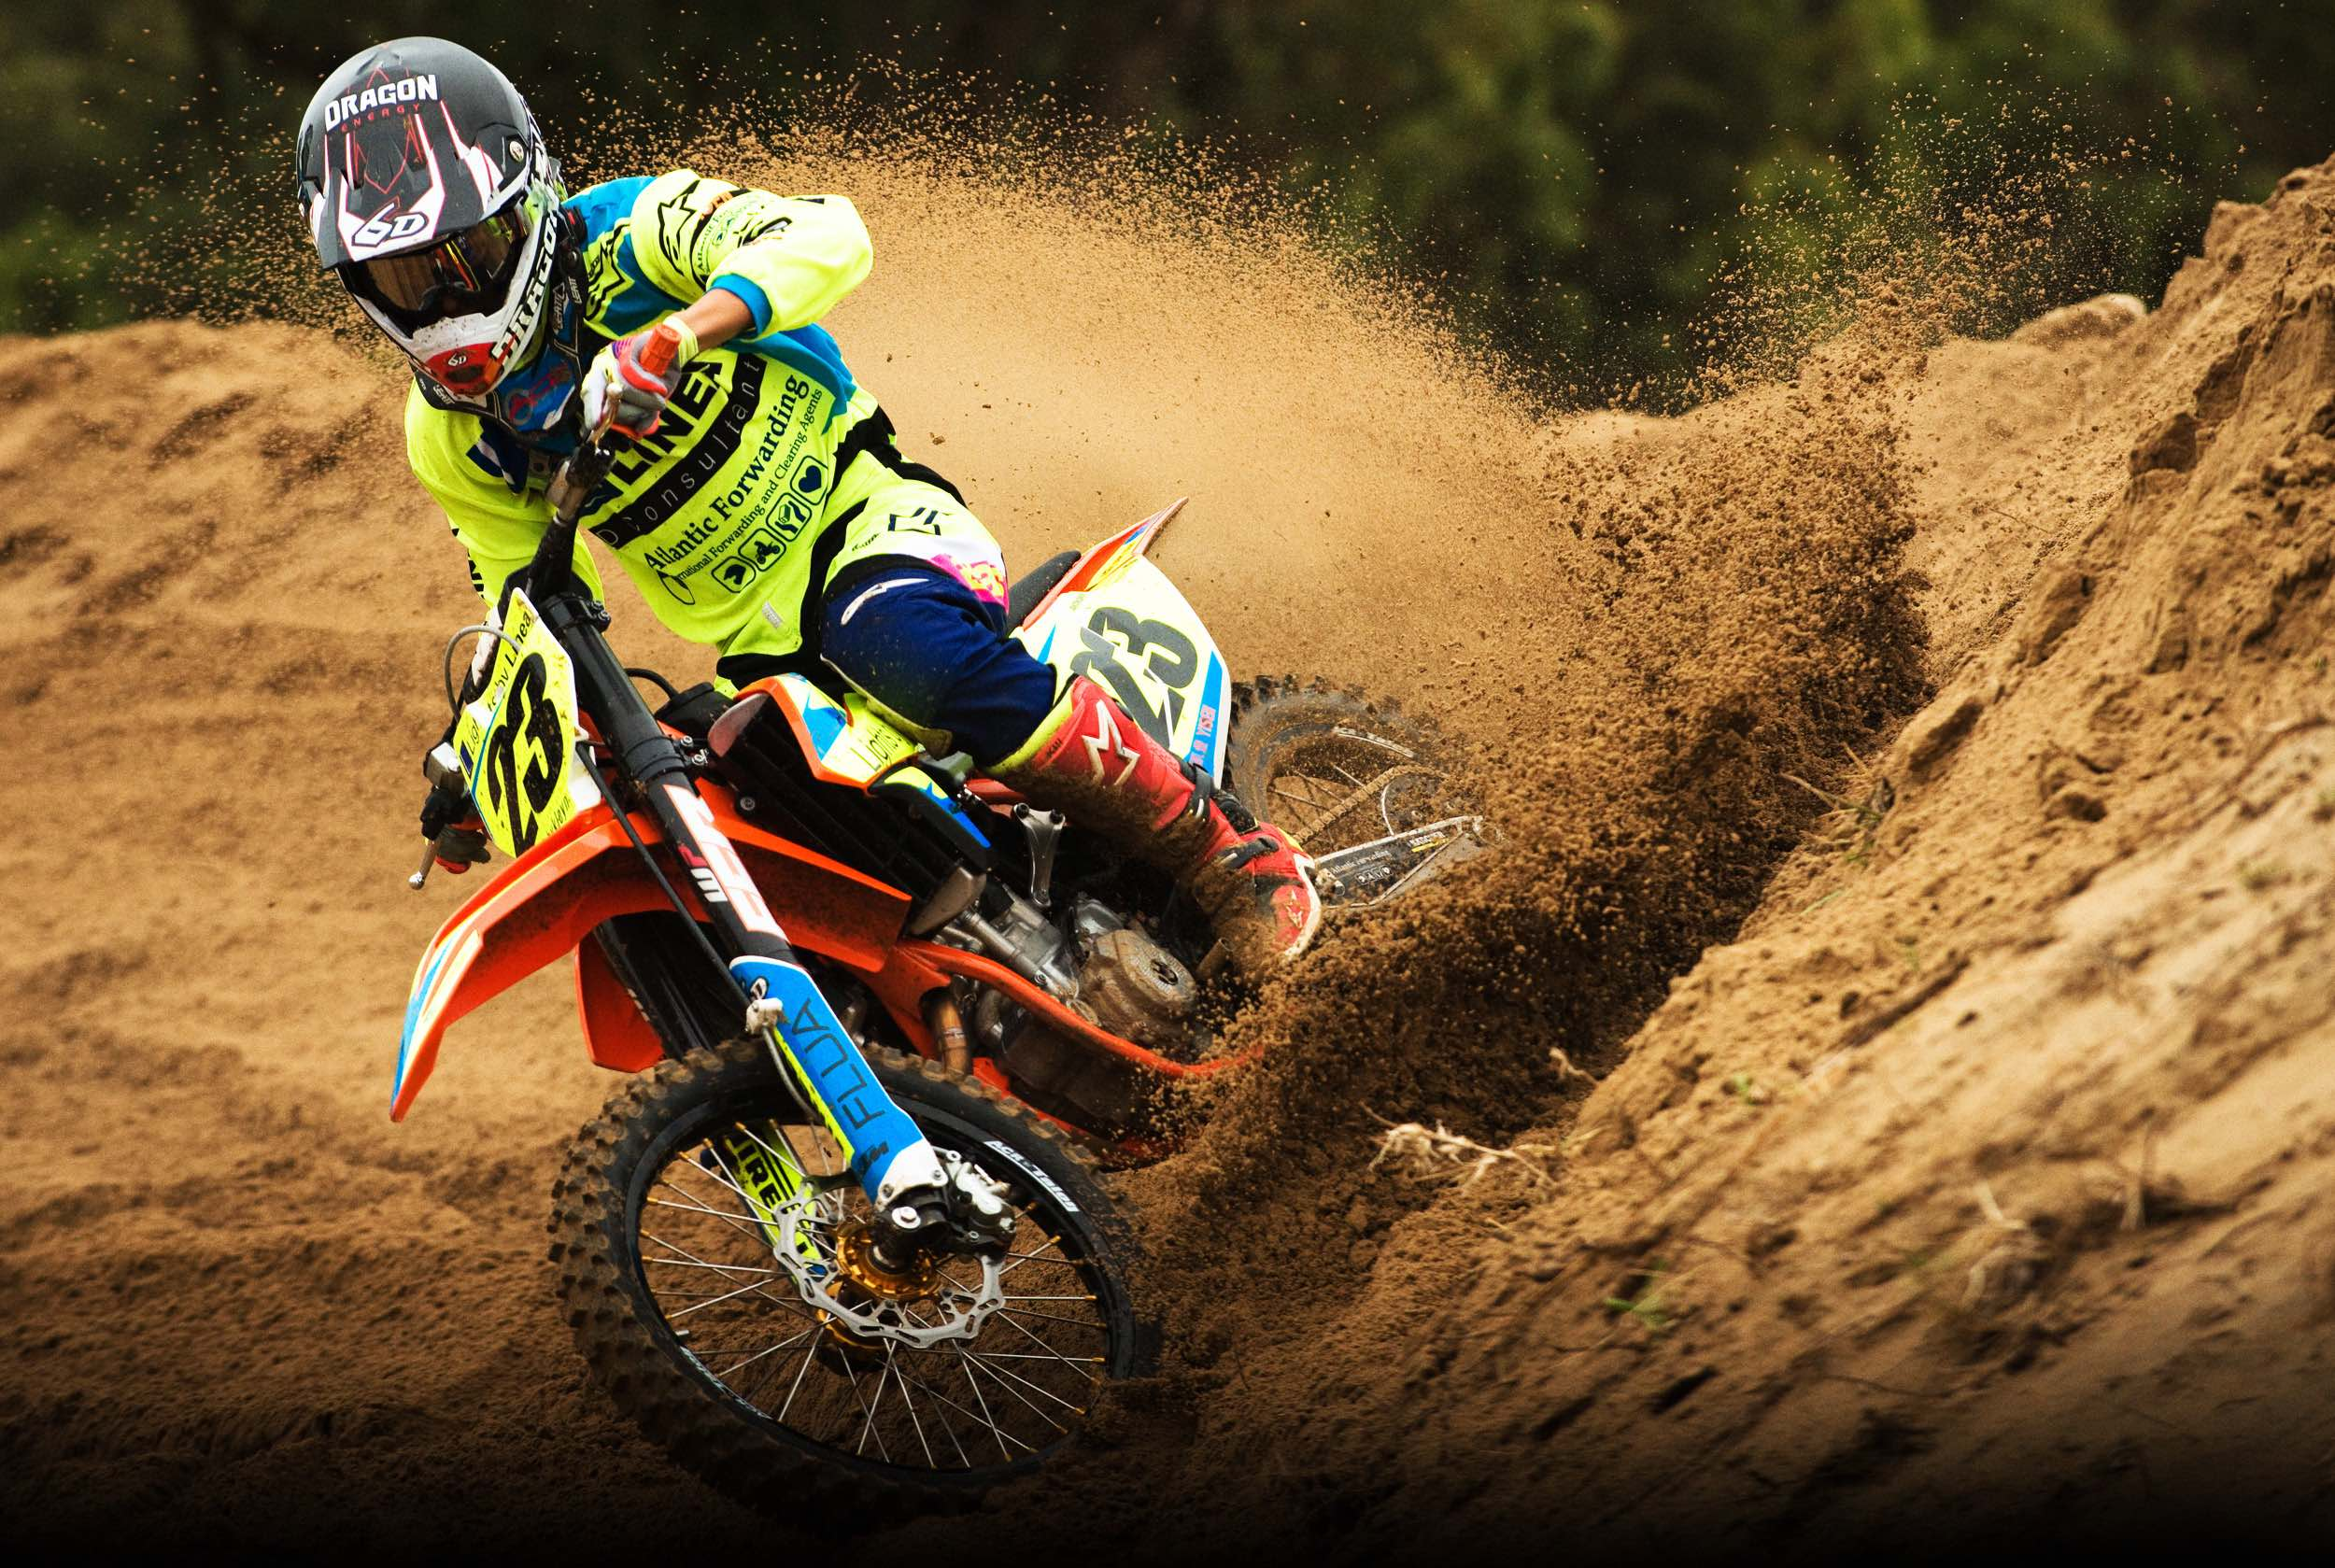 Anthony Raynard winning the MX2 class at round 1 of the 2018 MX Nationals